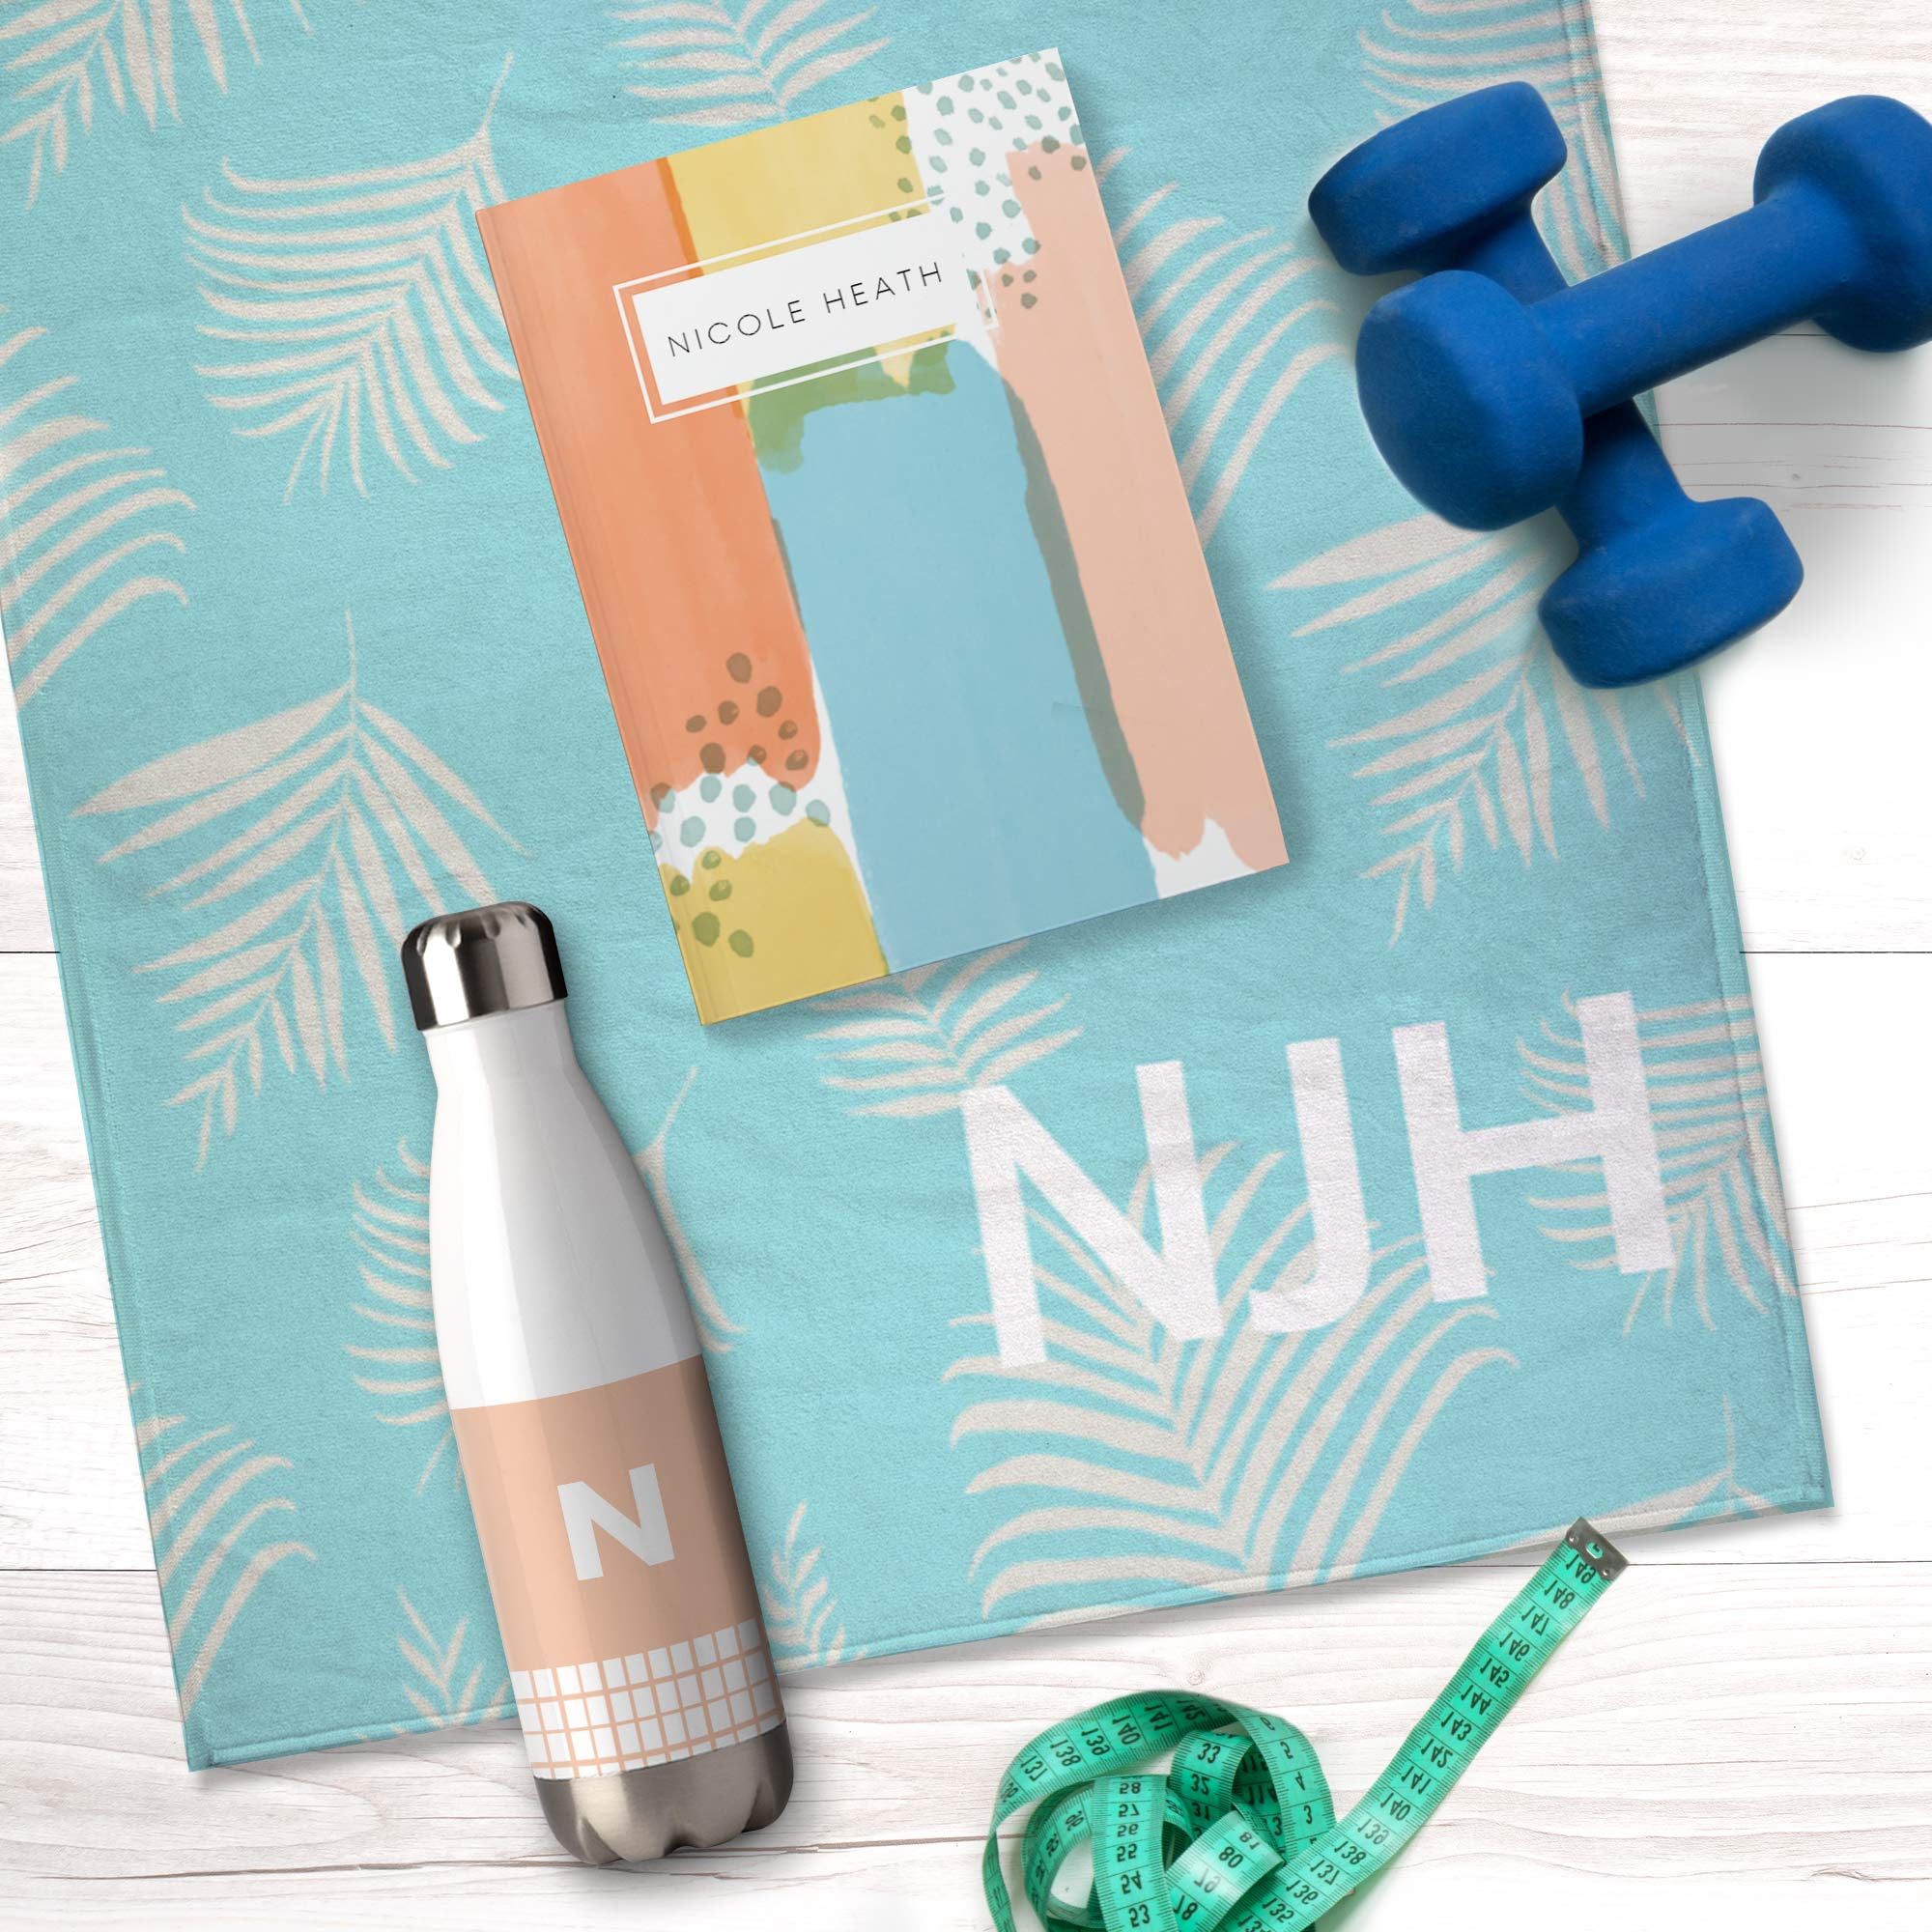 Personalised Gym Accessories that are Custom #FitnessGoals